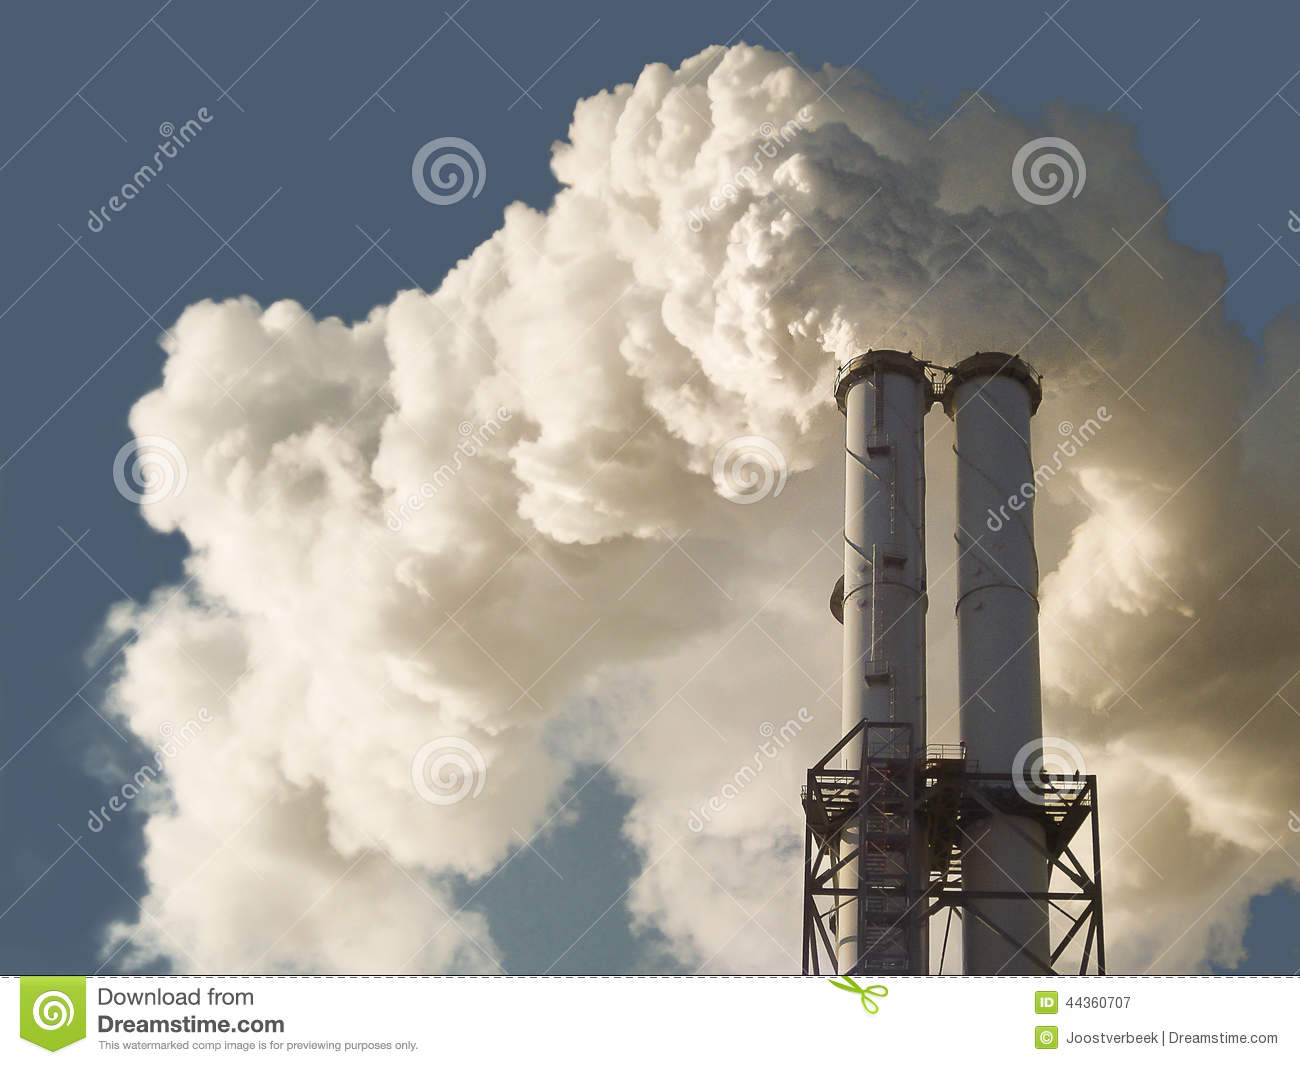 Dirty Smoke Stack Of Coal Fired Power Plant Stock Image